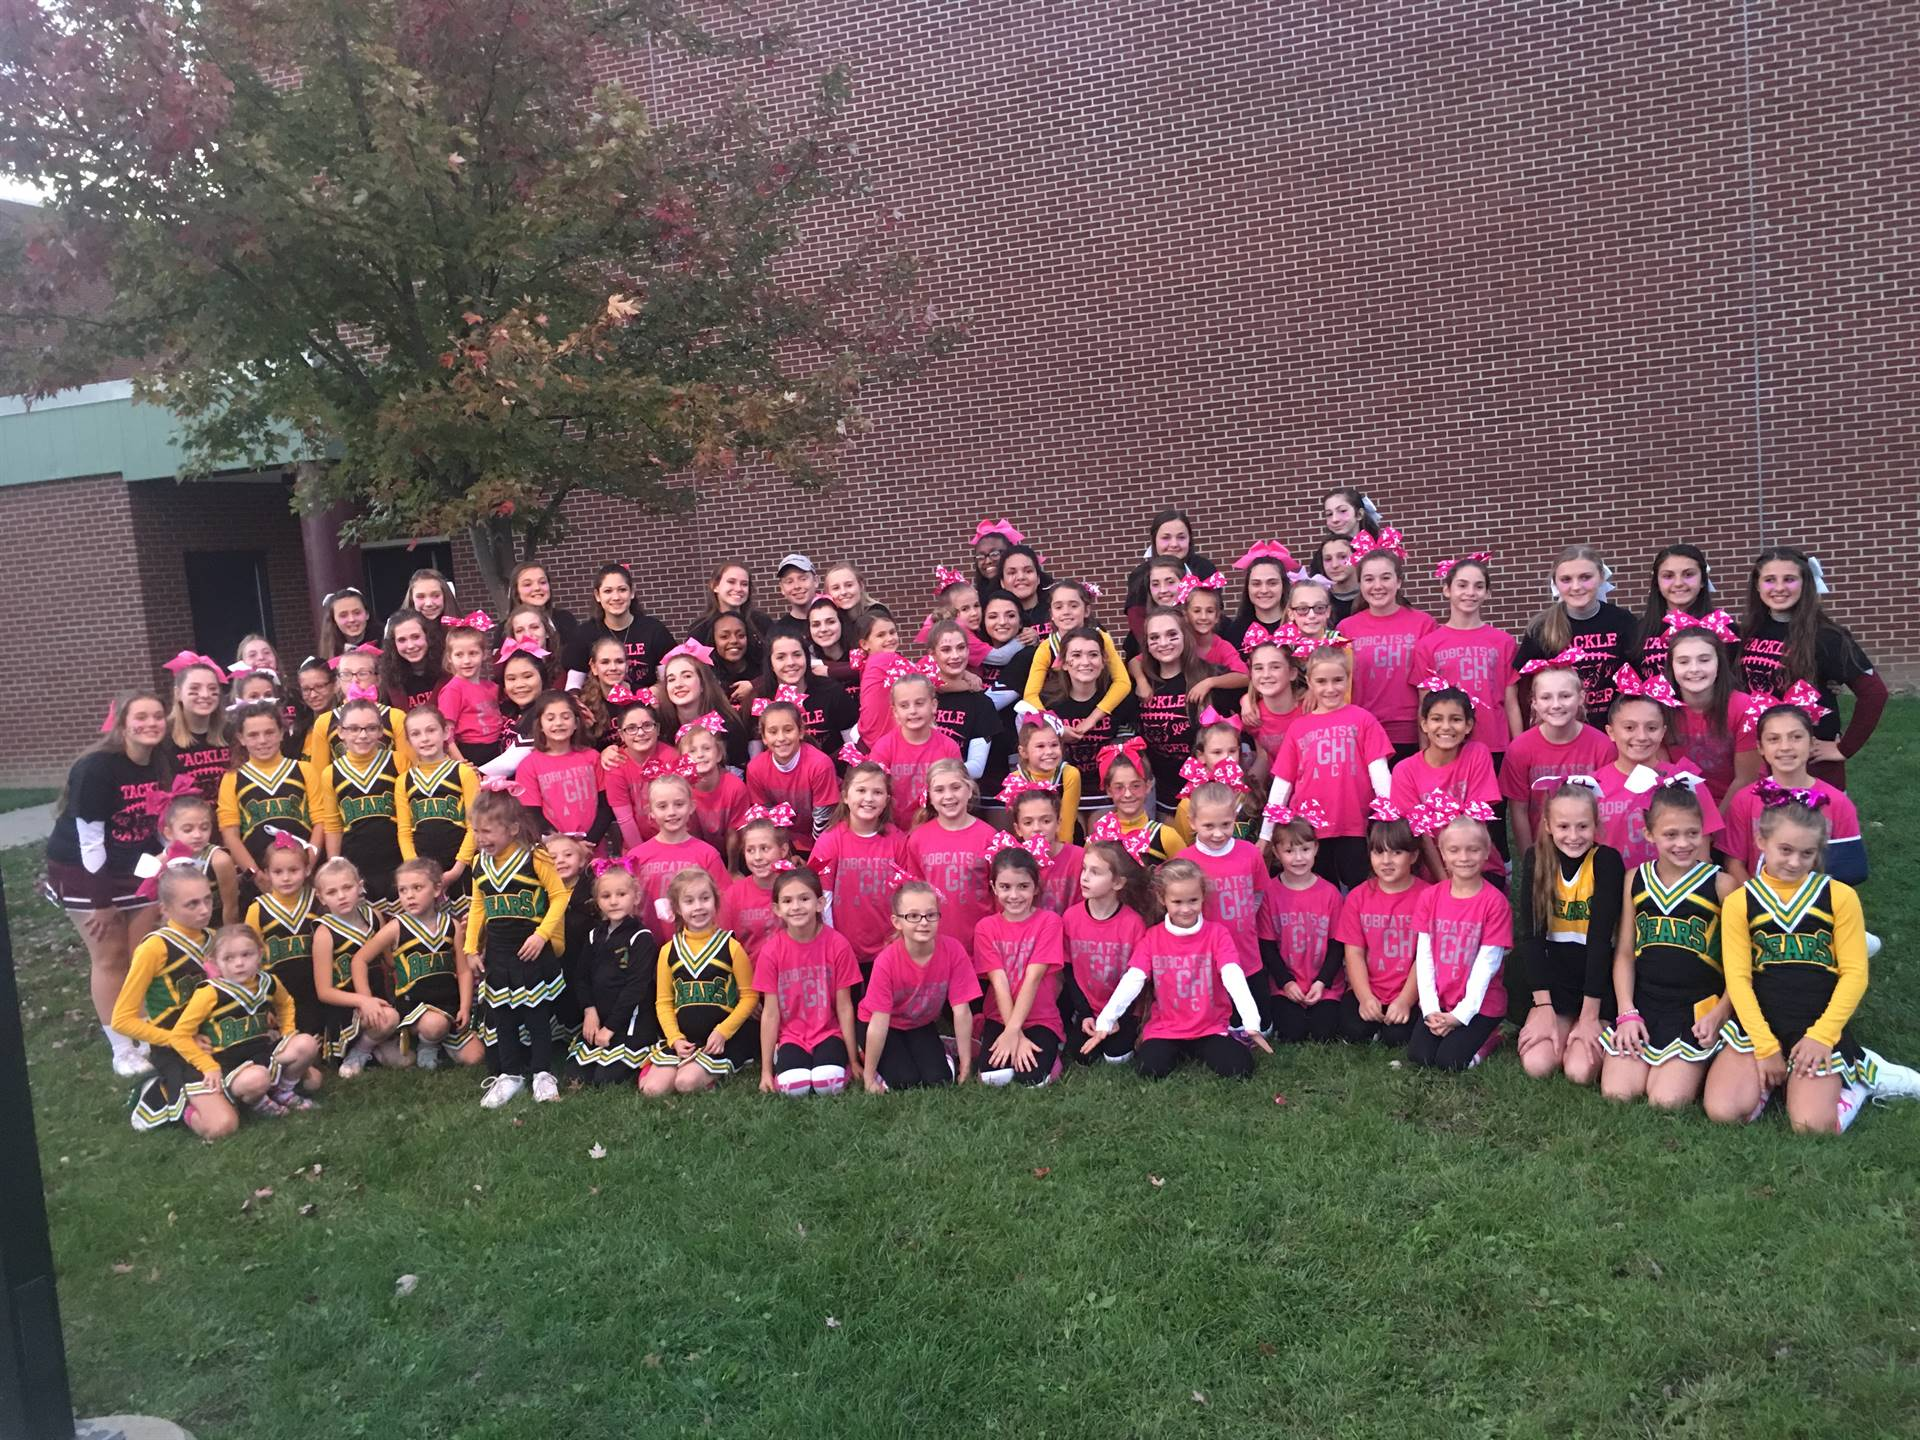 Youth and HS/MS Cheerleaders @ youth night  2017 - Brighton Twp, Beaver Youth and HS/MS Cheerleaders